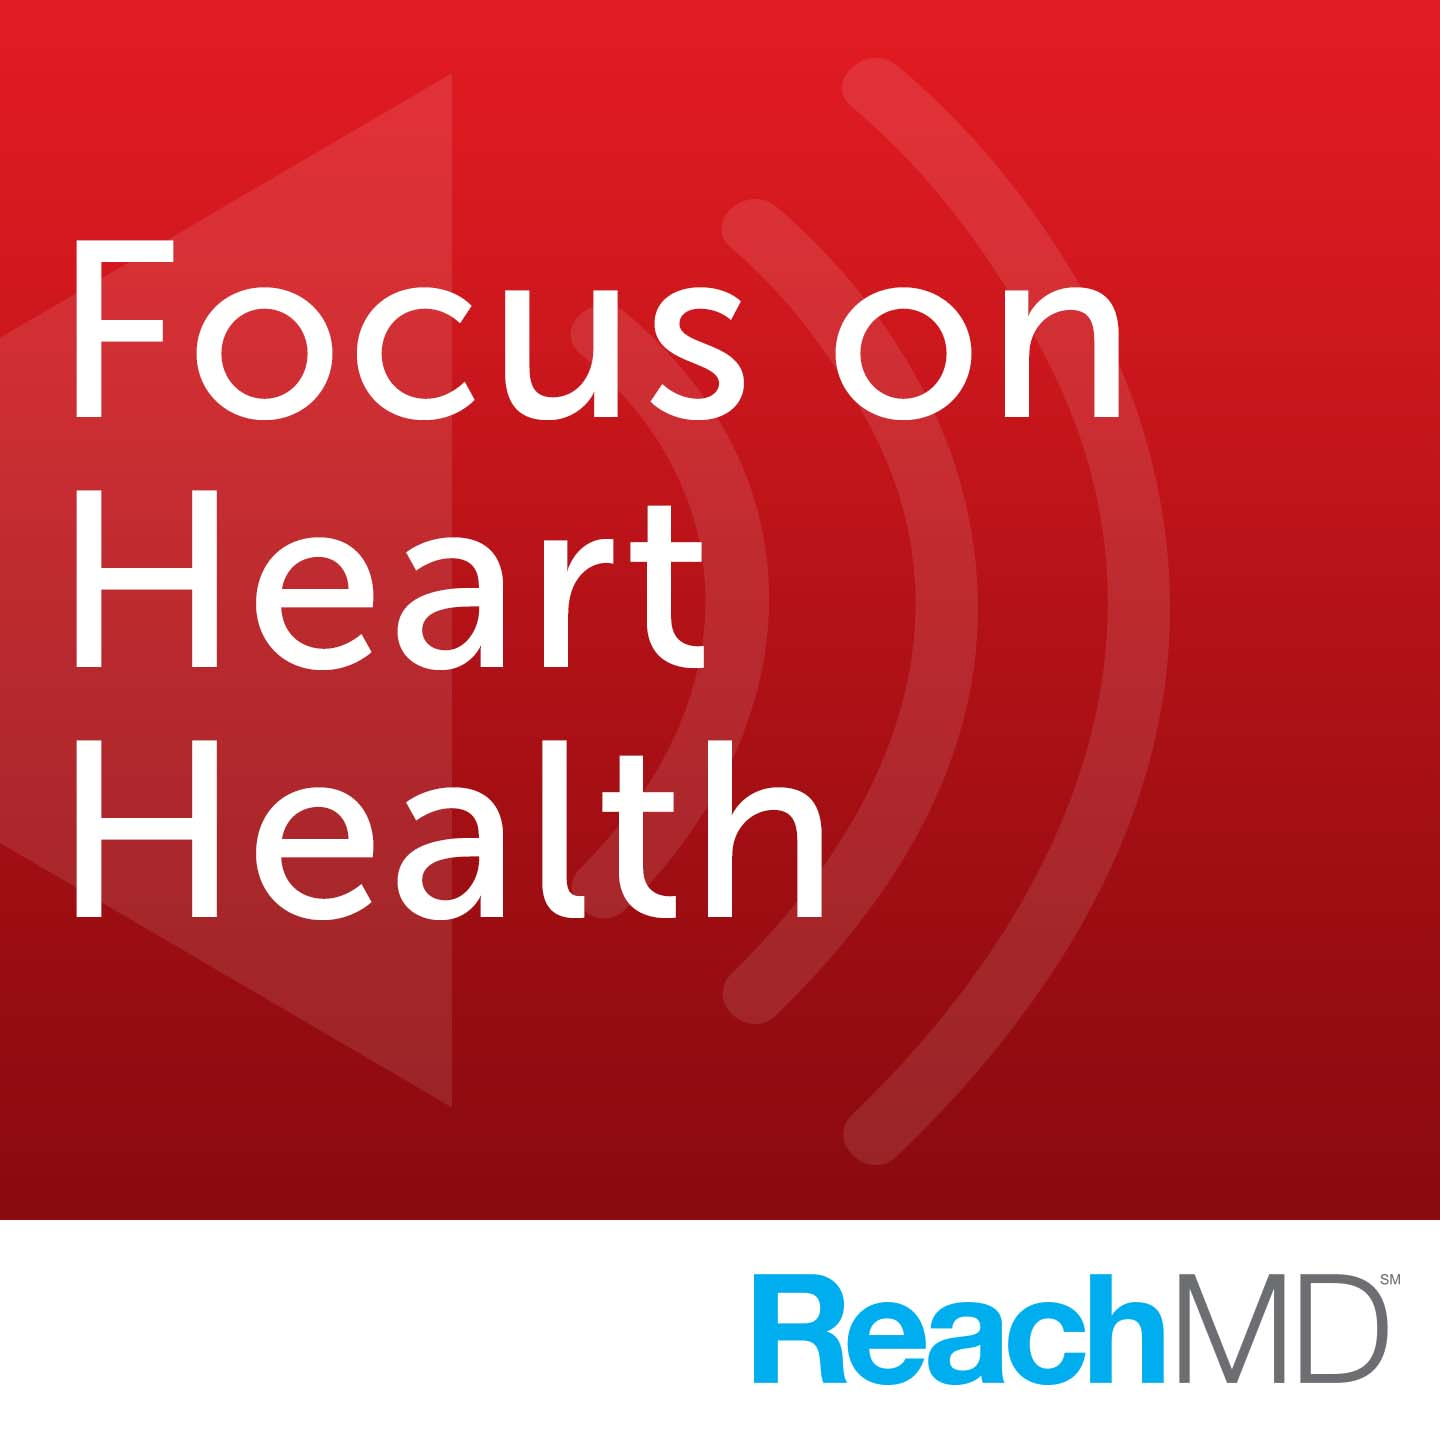 Focus on Heart Health